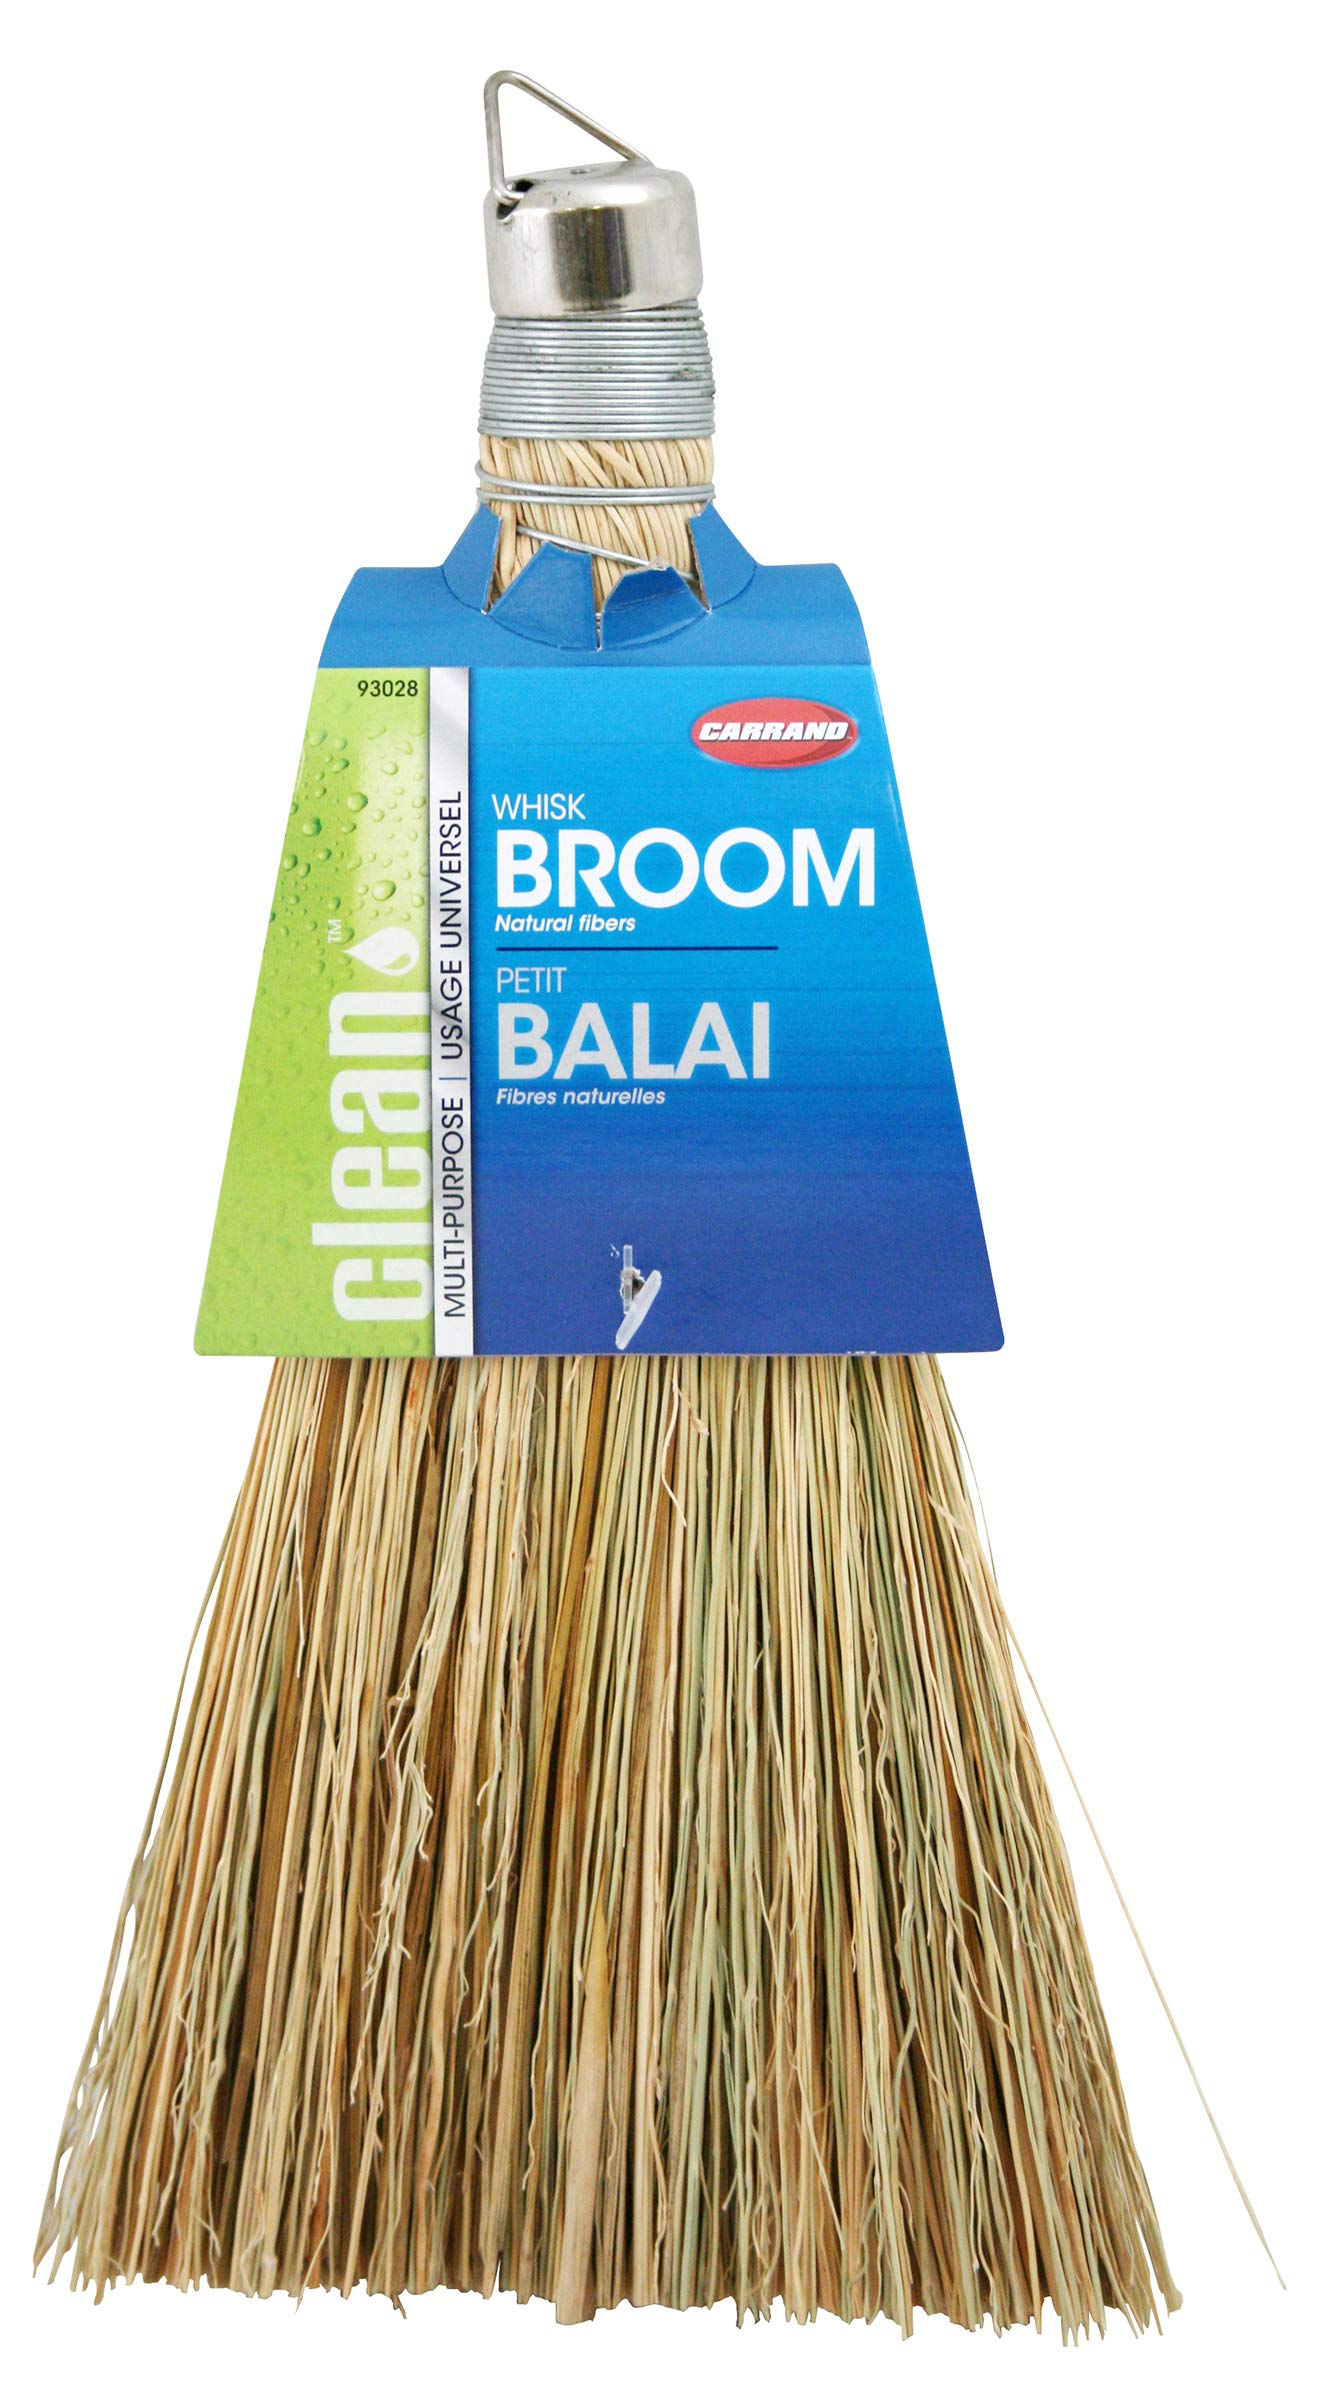 Carrand 93028 10'' Whisk Broom by Carrand (Image #1)